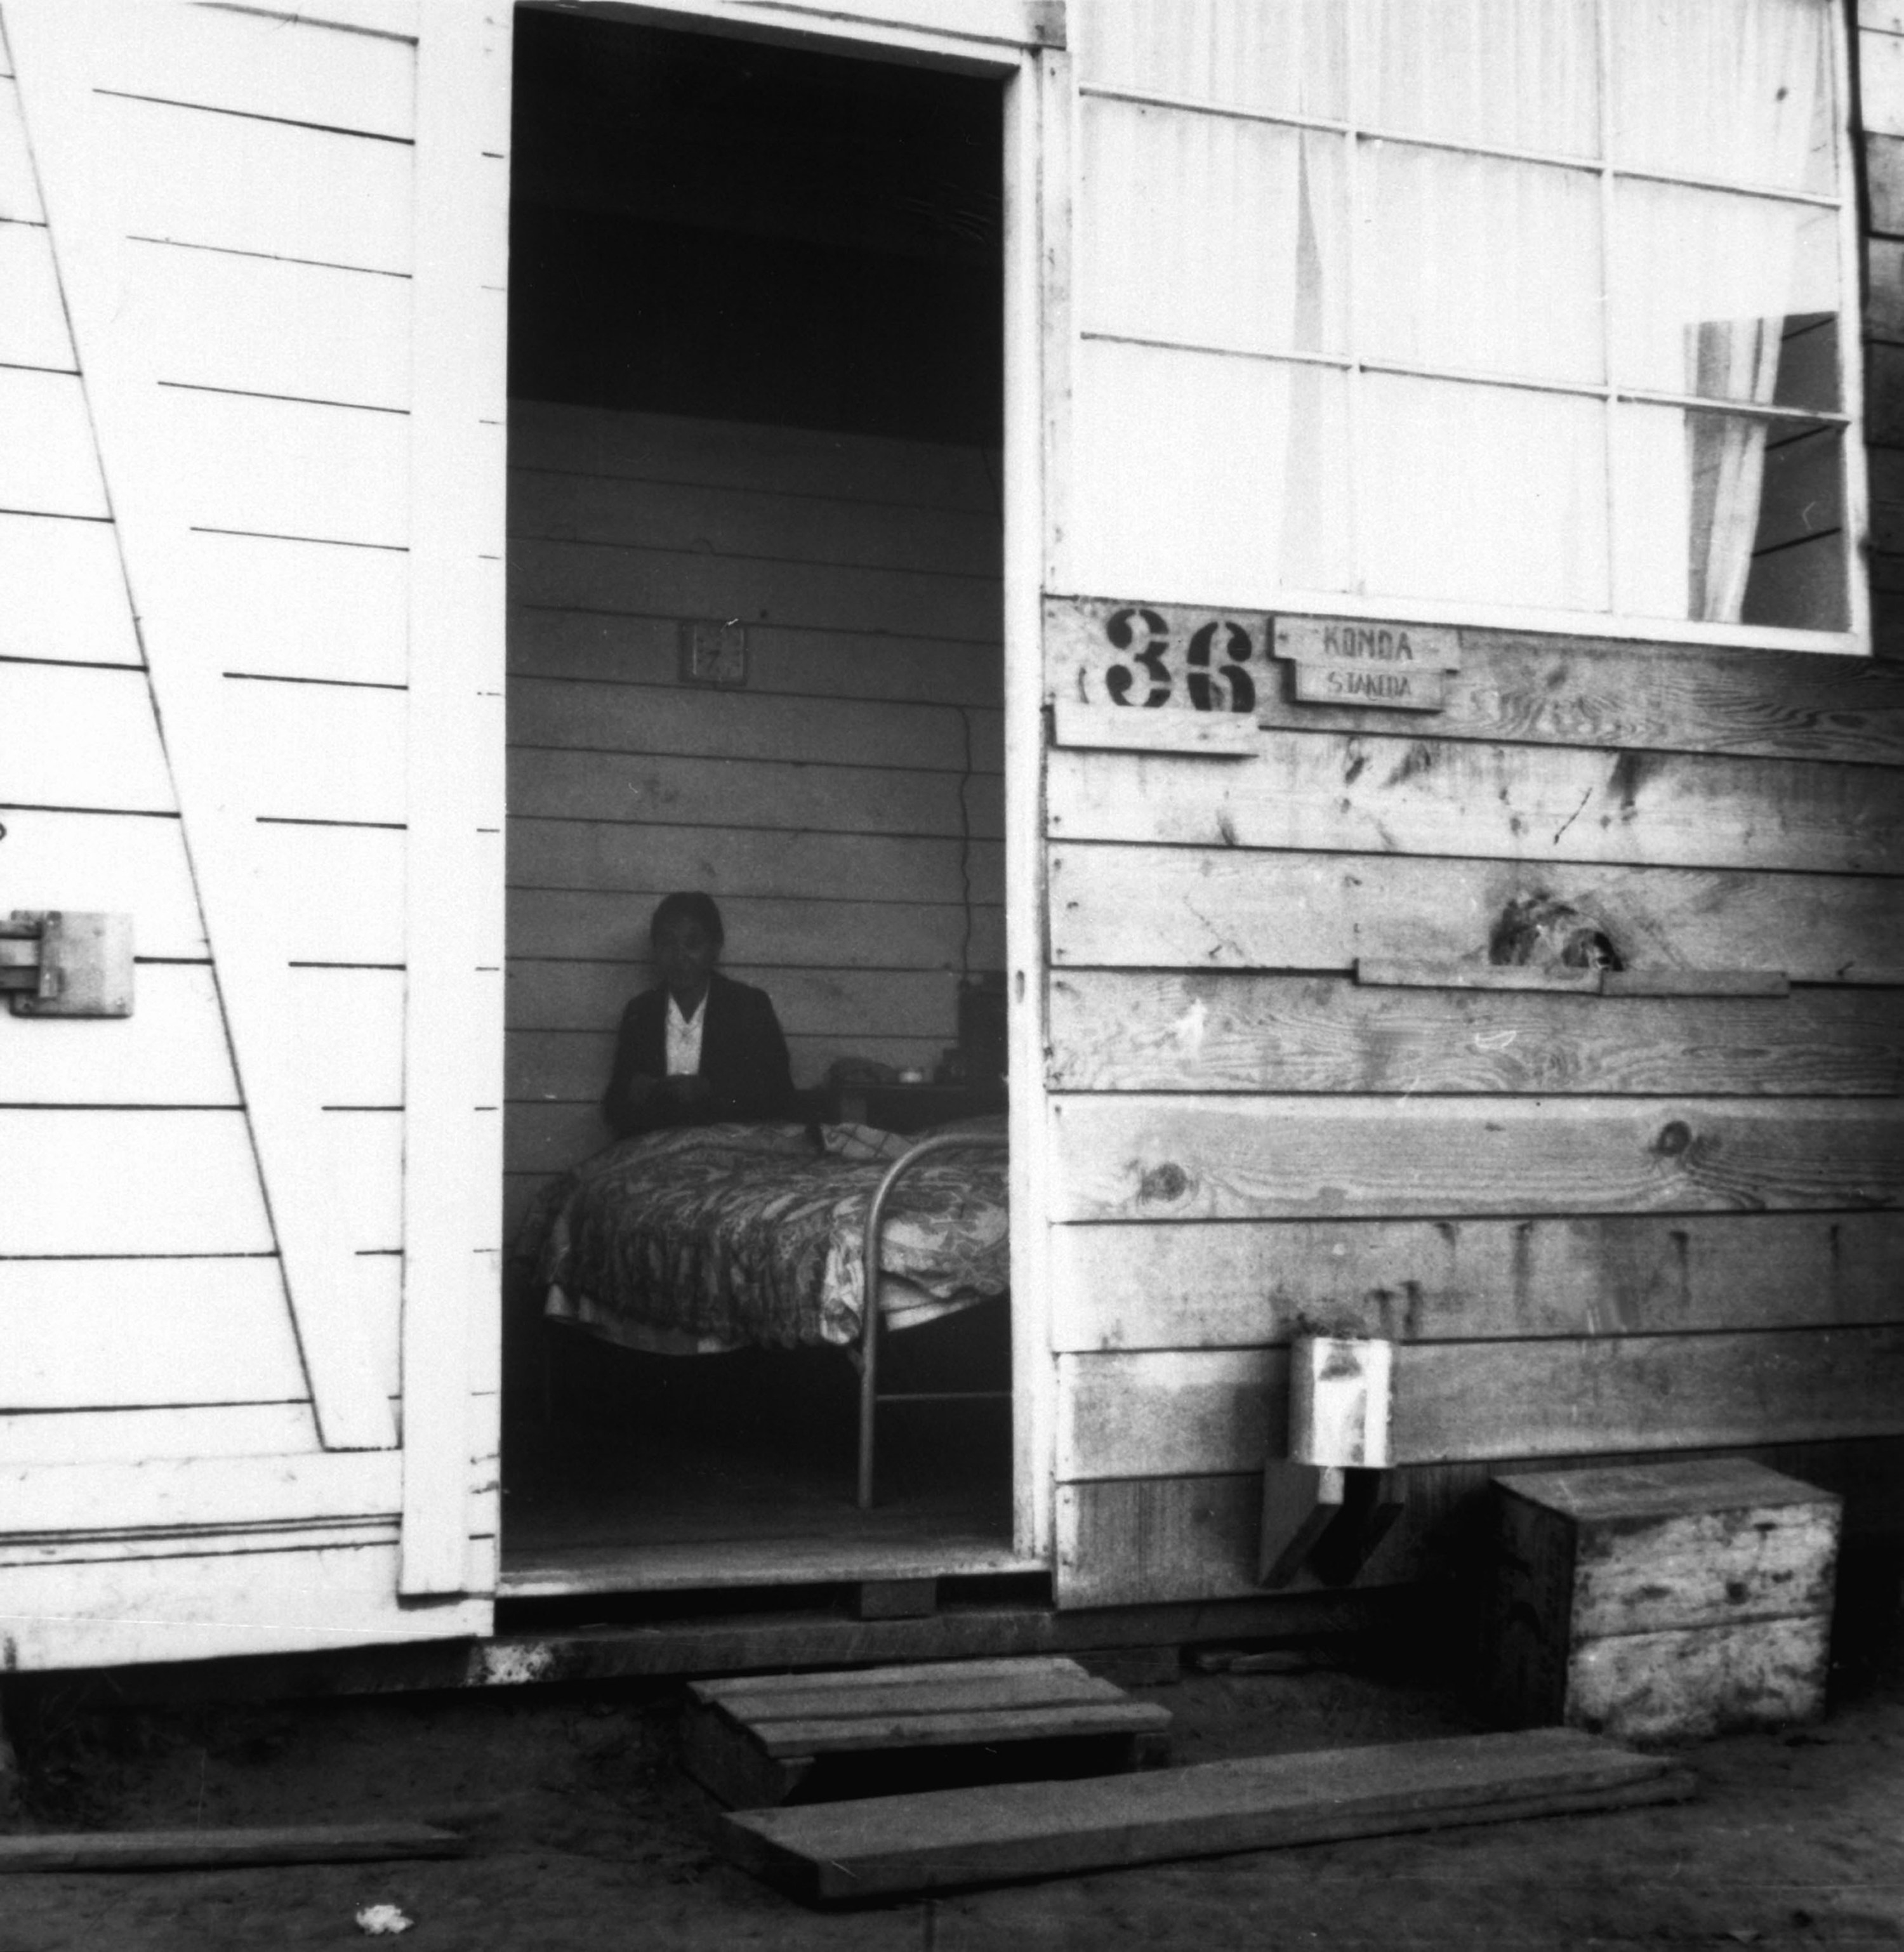 The unit's open door shows a woman sitting next to a bed